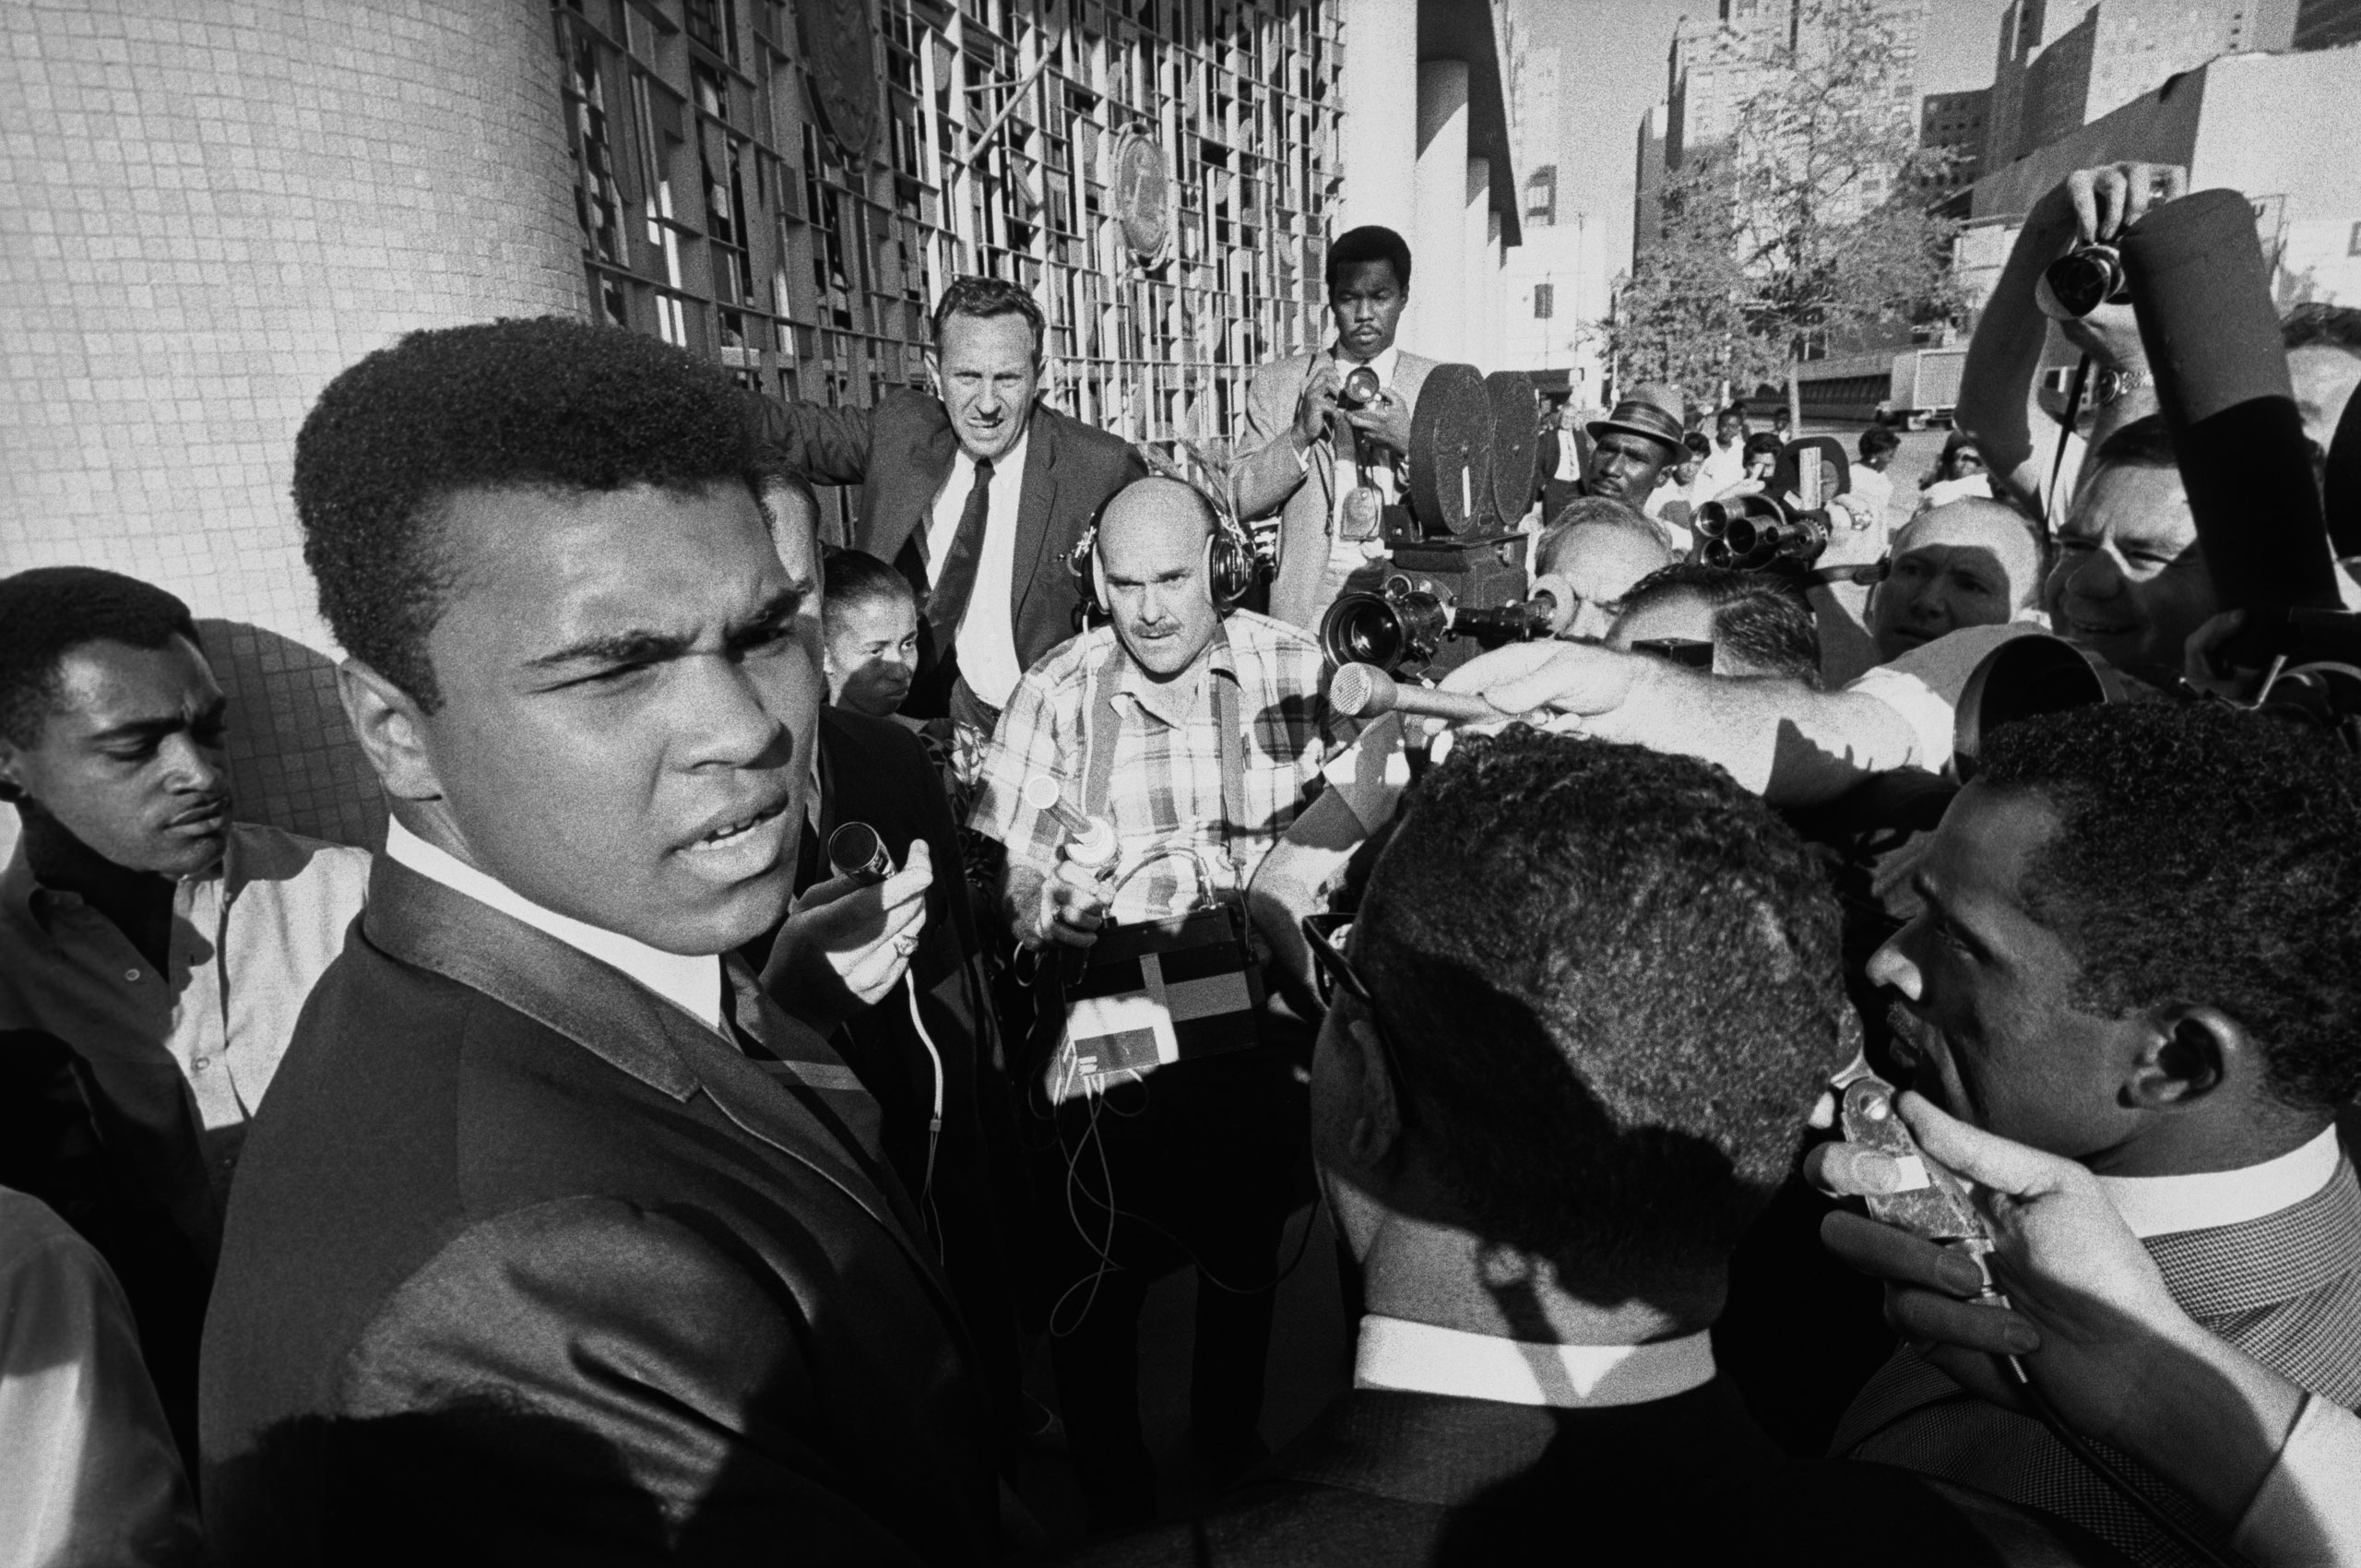 Ali leaves a federal court in Houston after a jury found him guilty on charges of refusing to be inducted into the U.S. armed forces on June 20, 1967. Ali contended that he was a Nation of Islam minister and not subject to the draft.